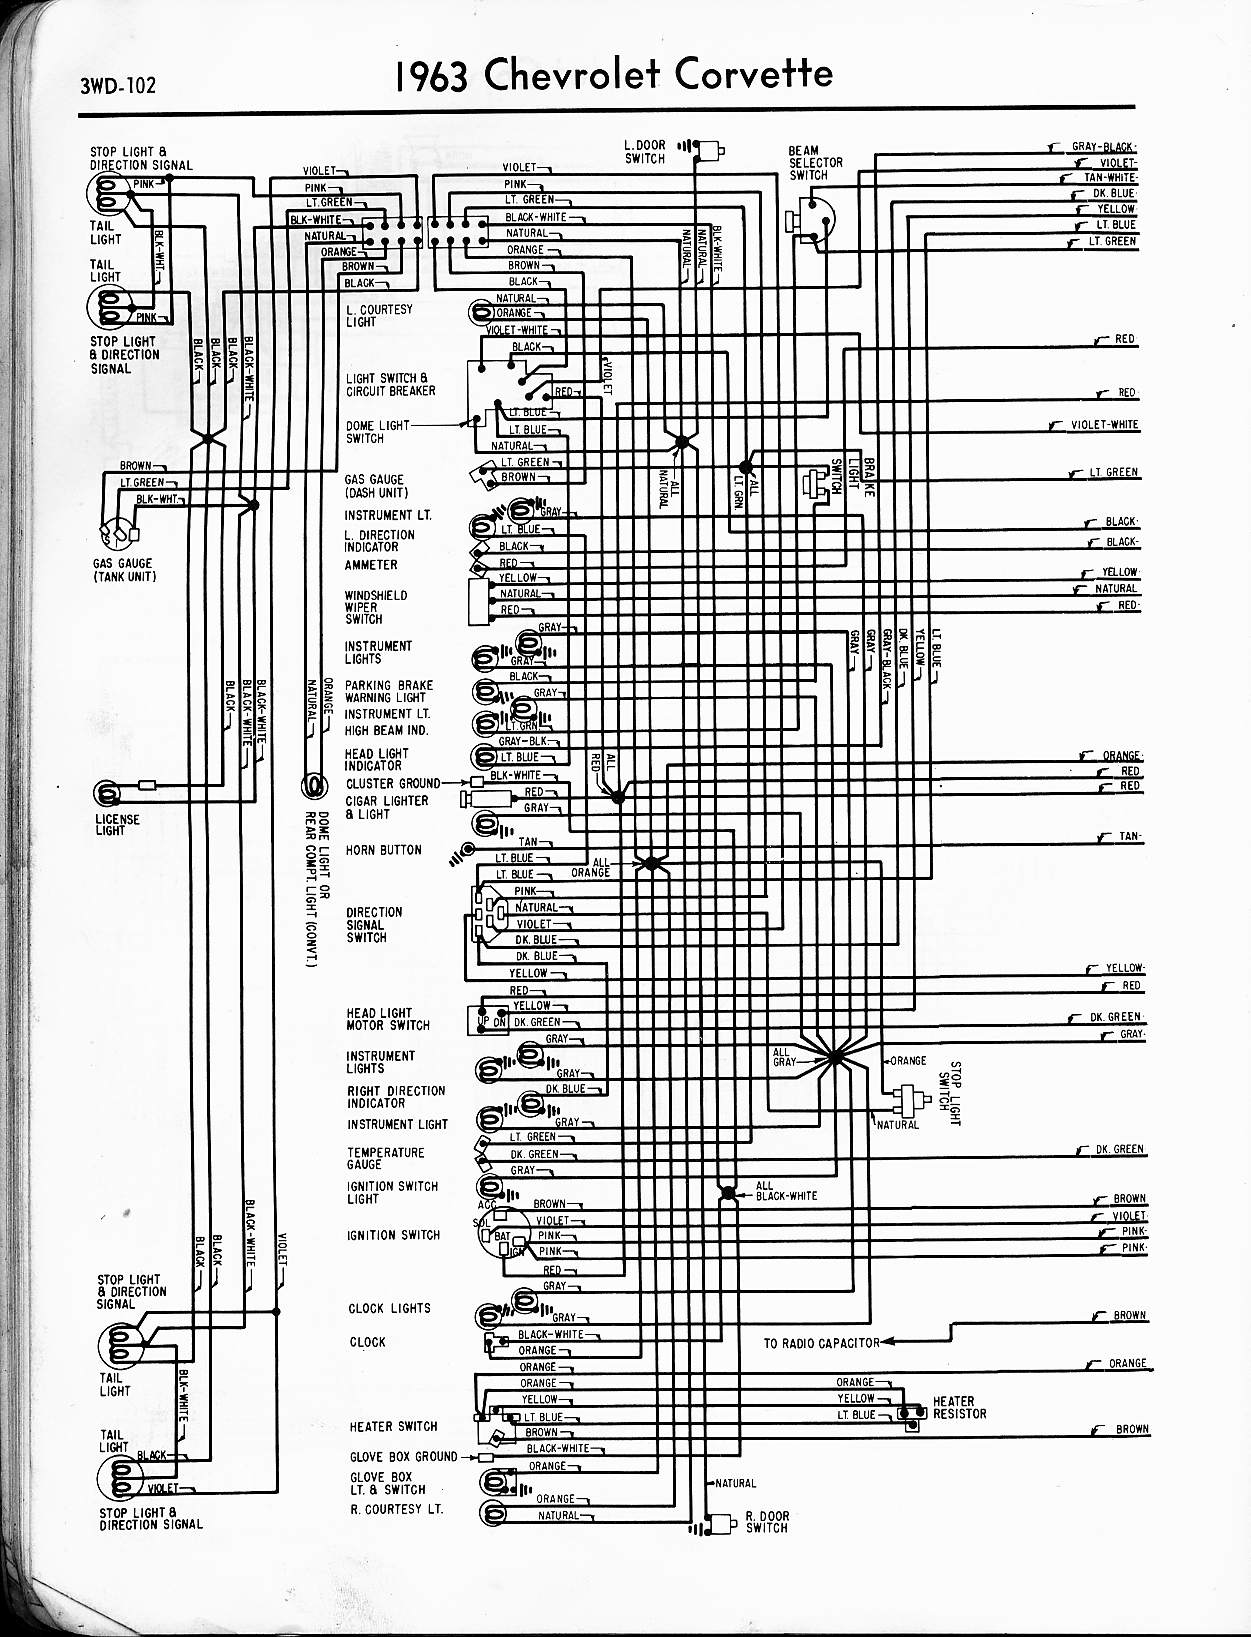 MWireChev63_3WD 102 57 65 chevy wiring diagrams 66 Corvette at mr168.co